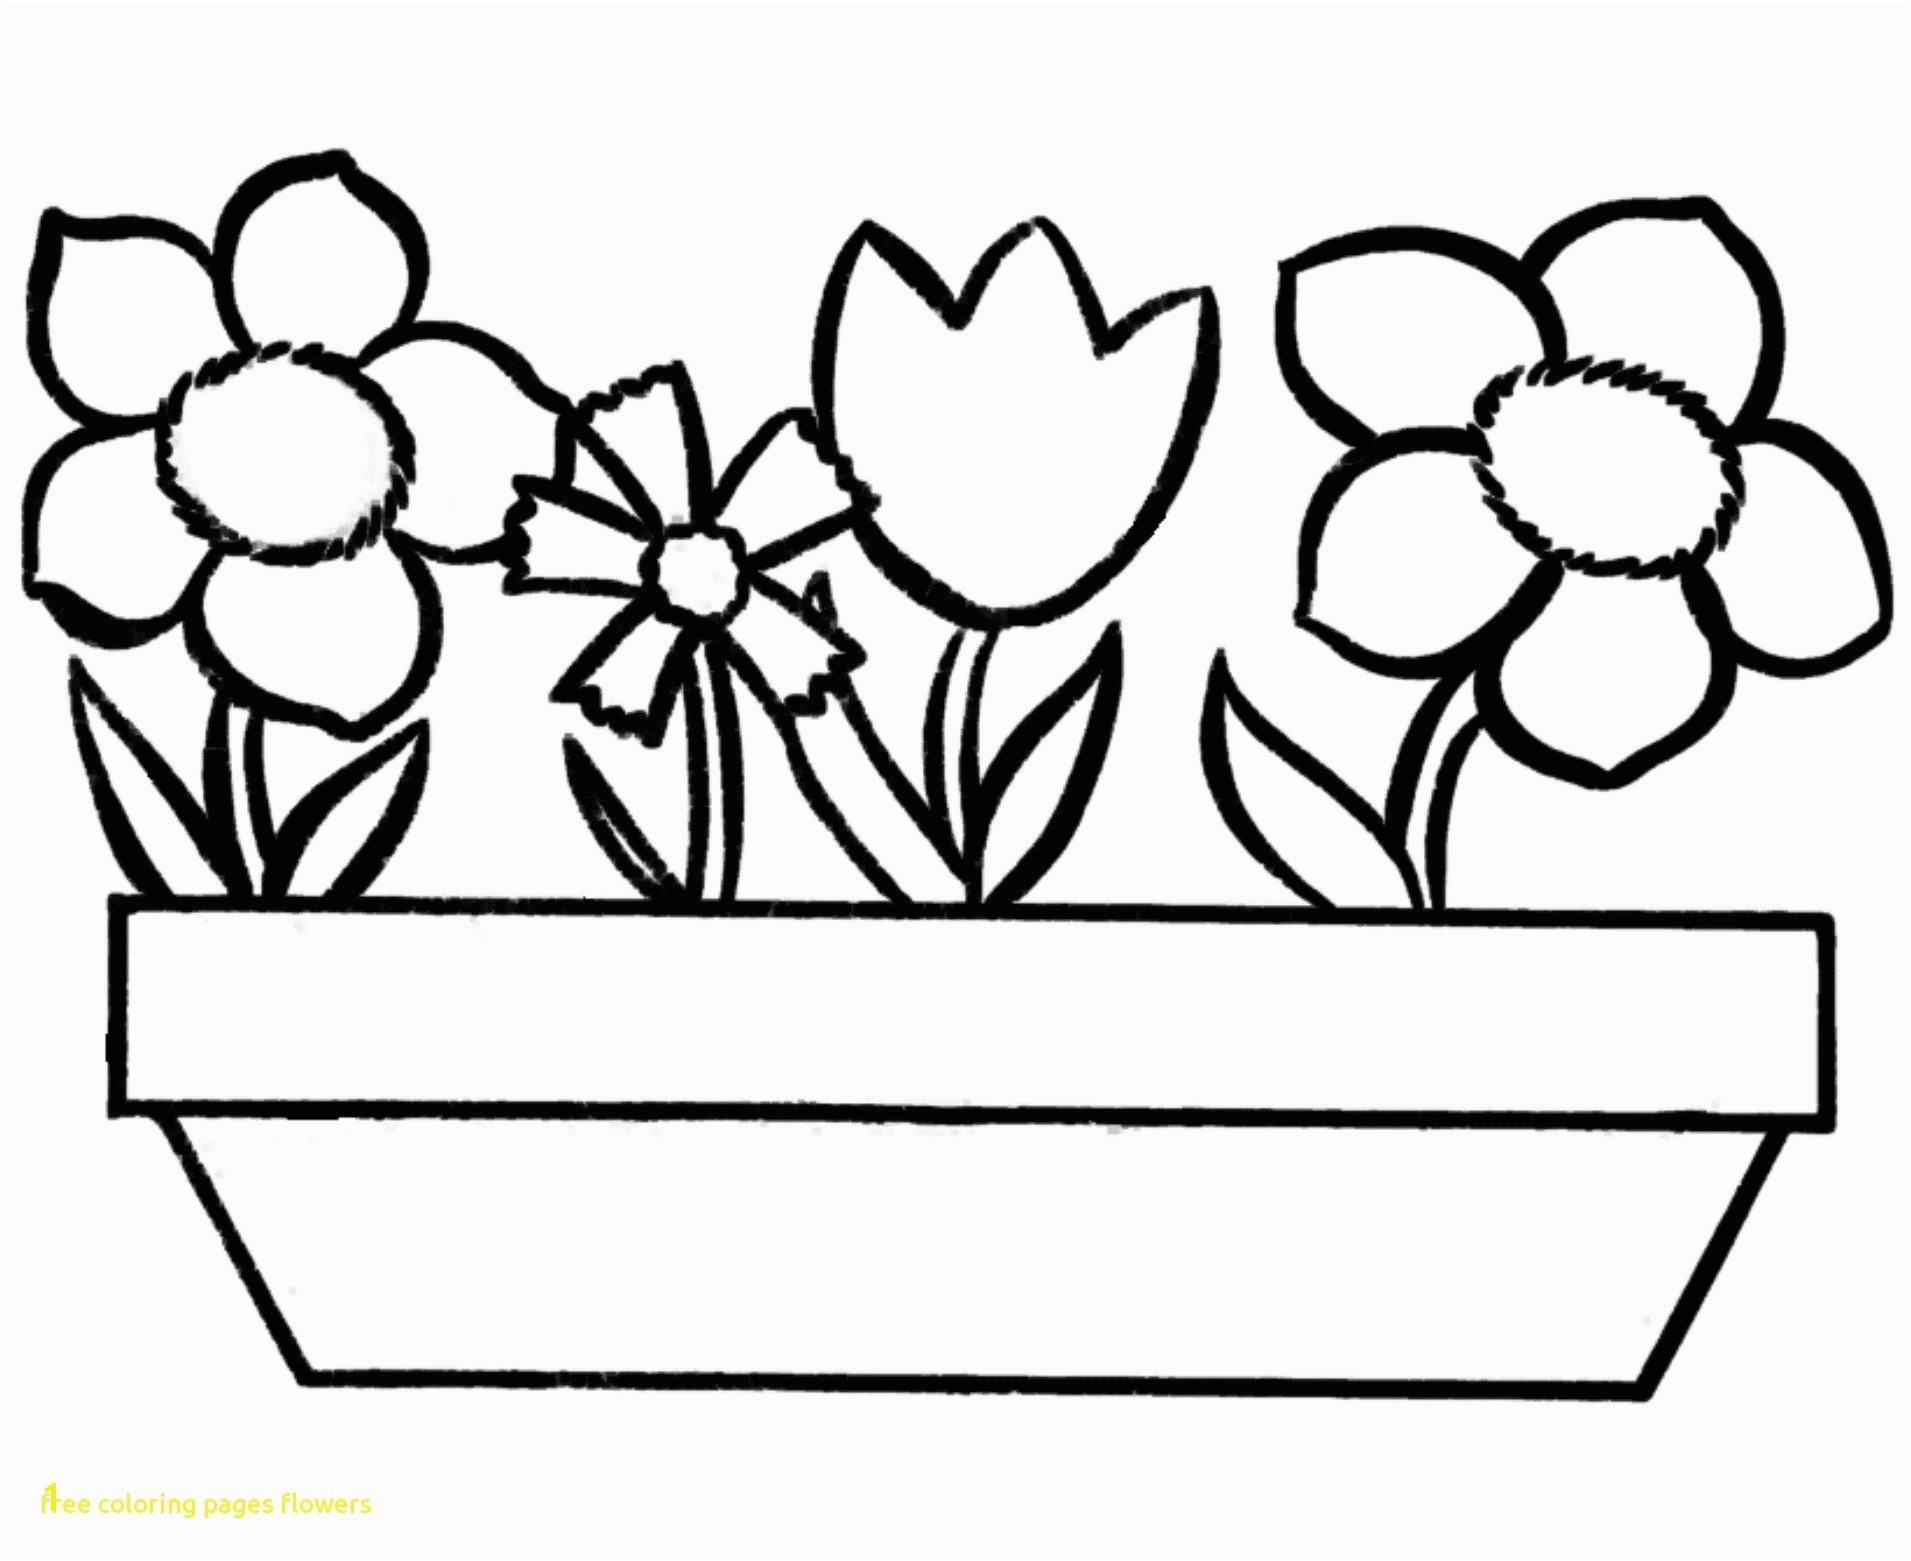 Flowers Coloring Pages Printable New Flower Caudata Page